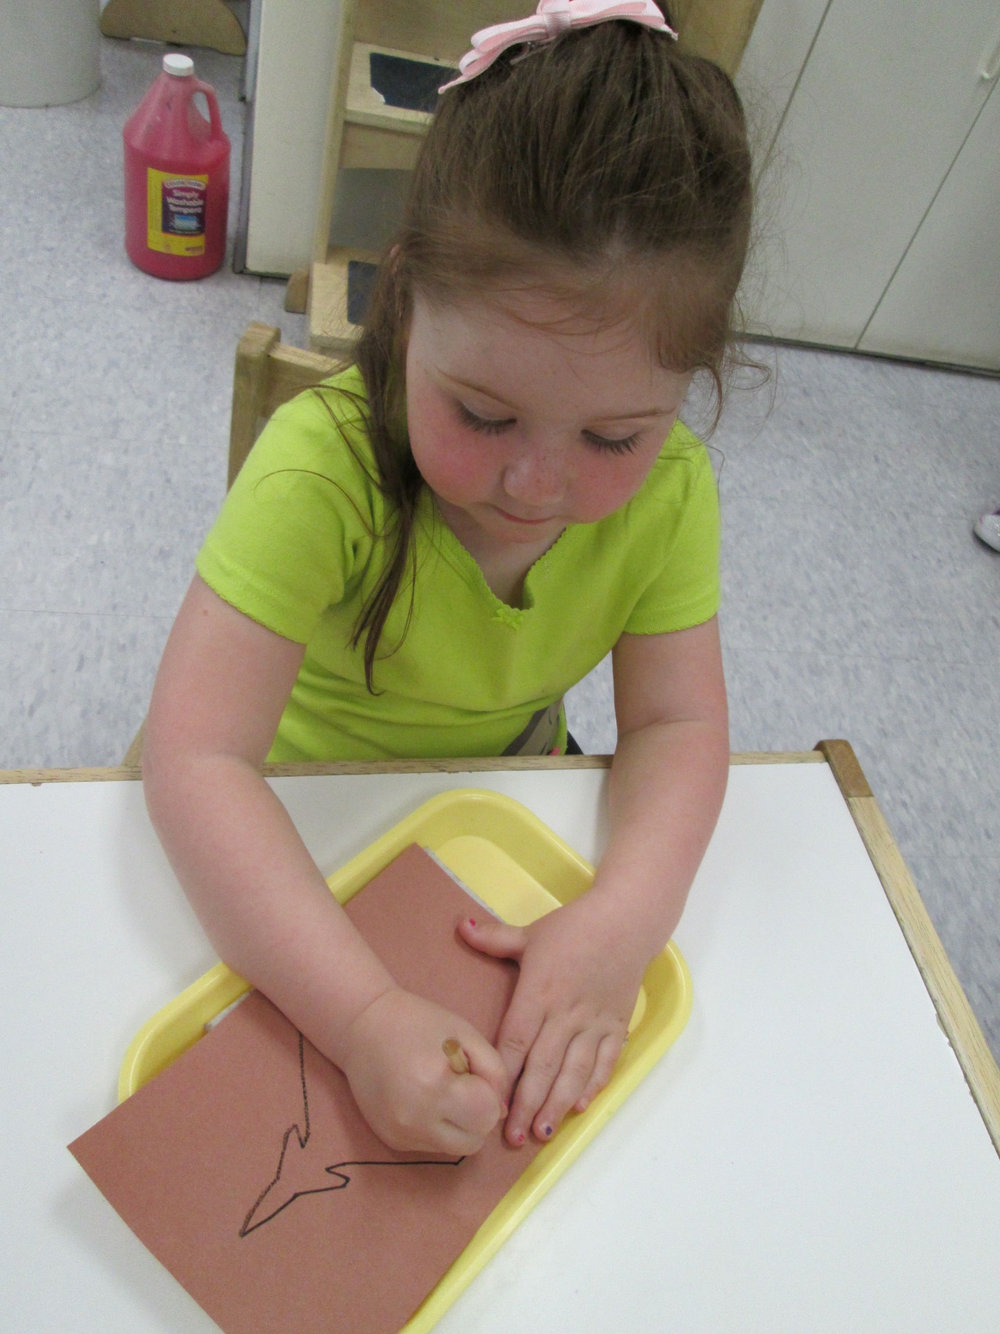 In the Practical Life area, pushpin work is popular. It requires concentration and helps students to develop their fine motor skills.